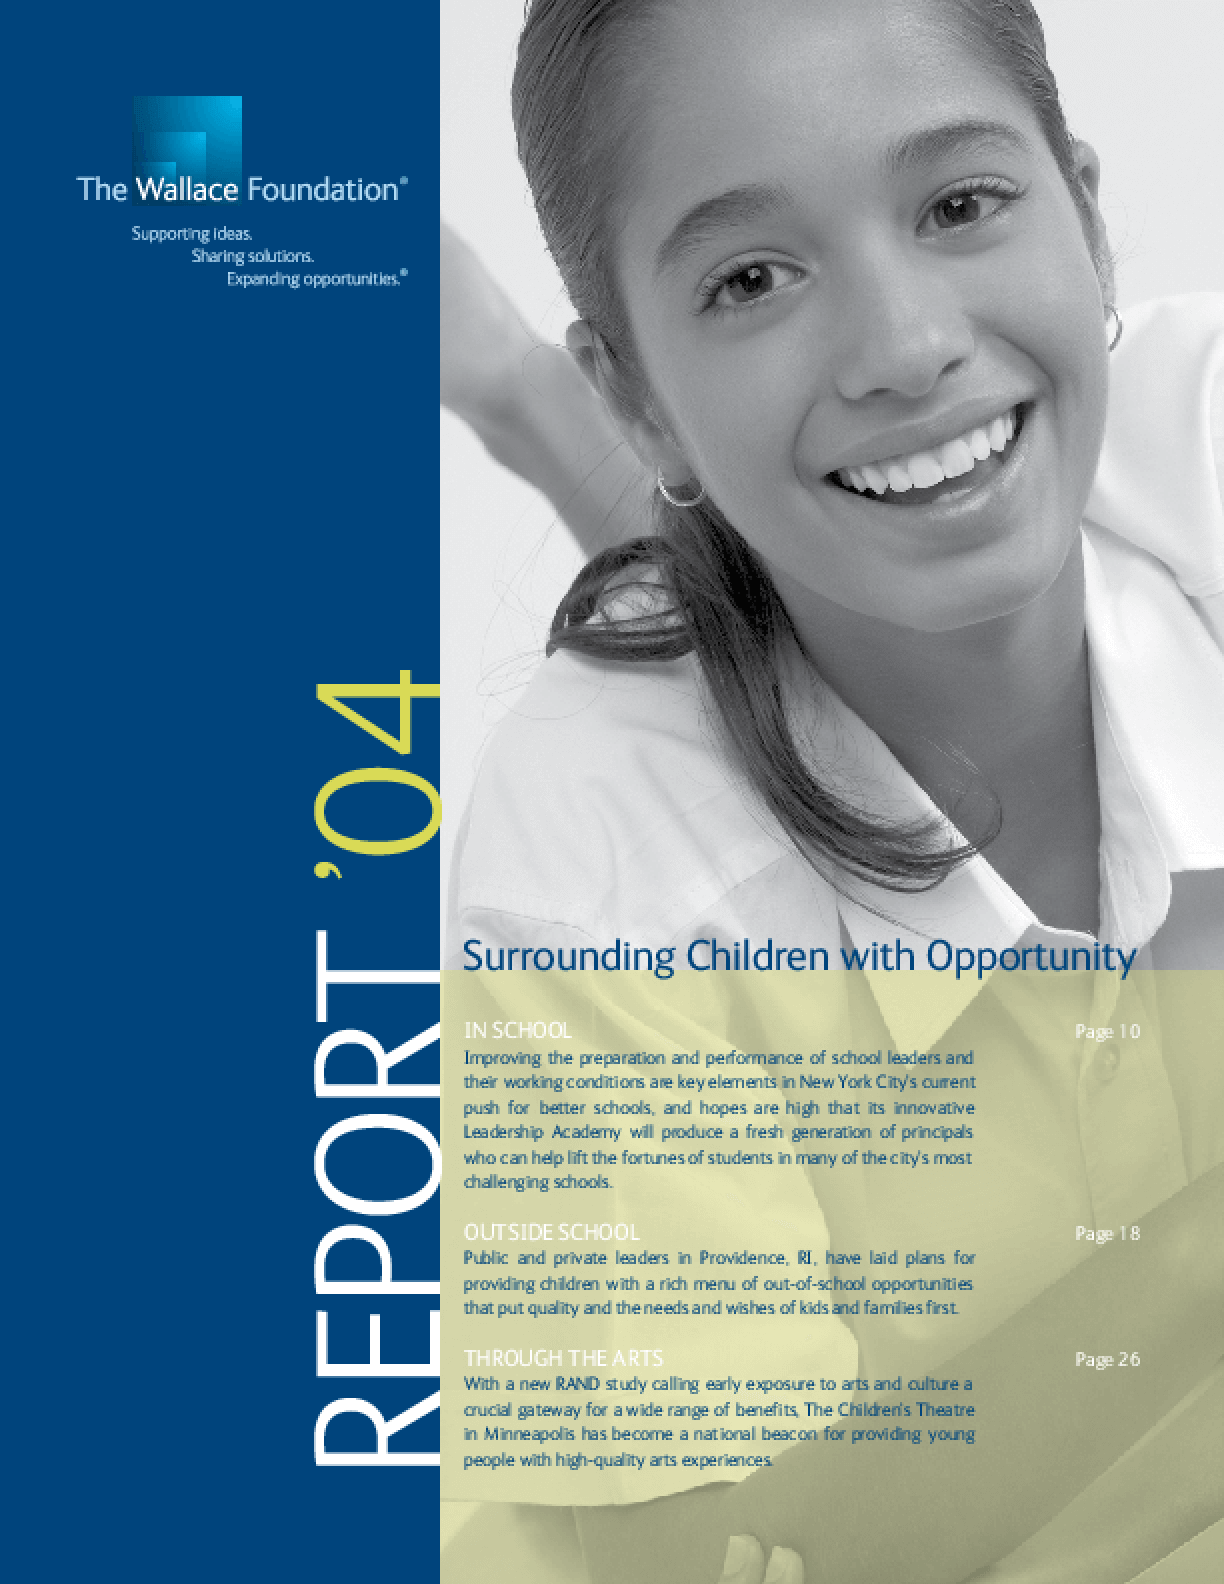 Wallace Foundation - 2004 Annual Report: Surrounding Children With Opportunity